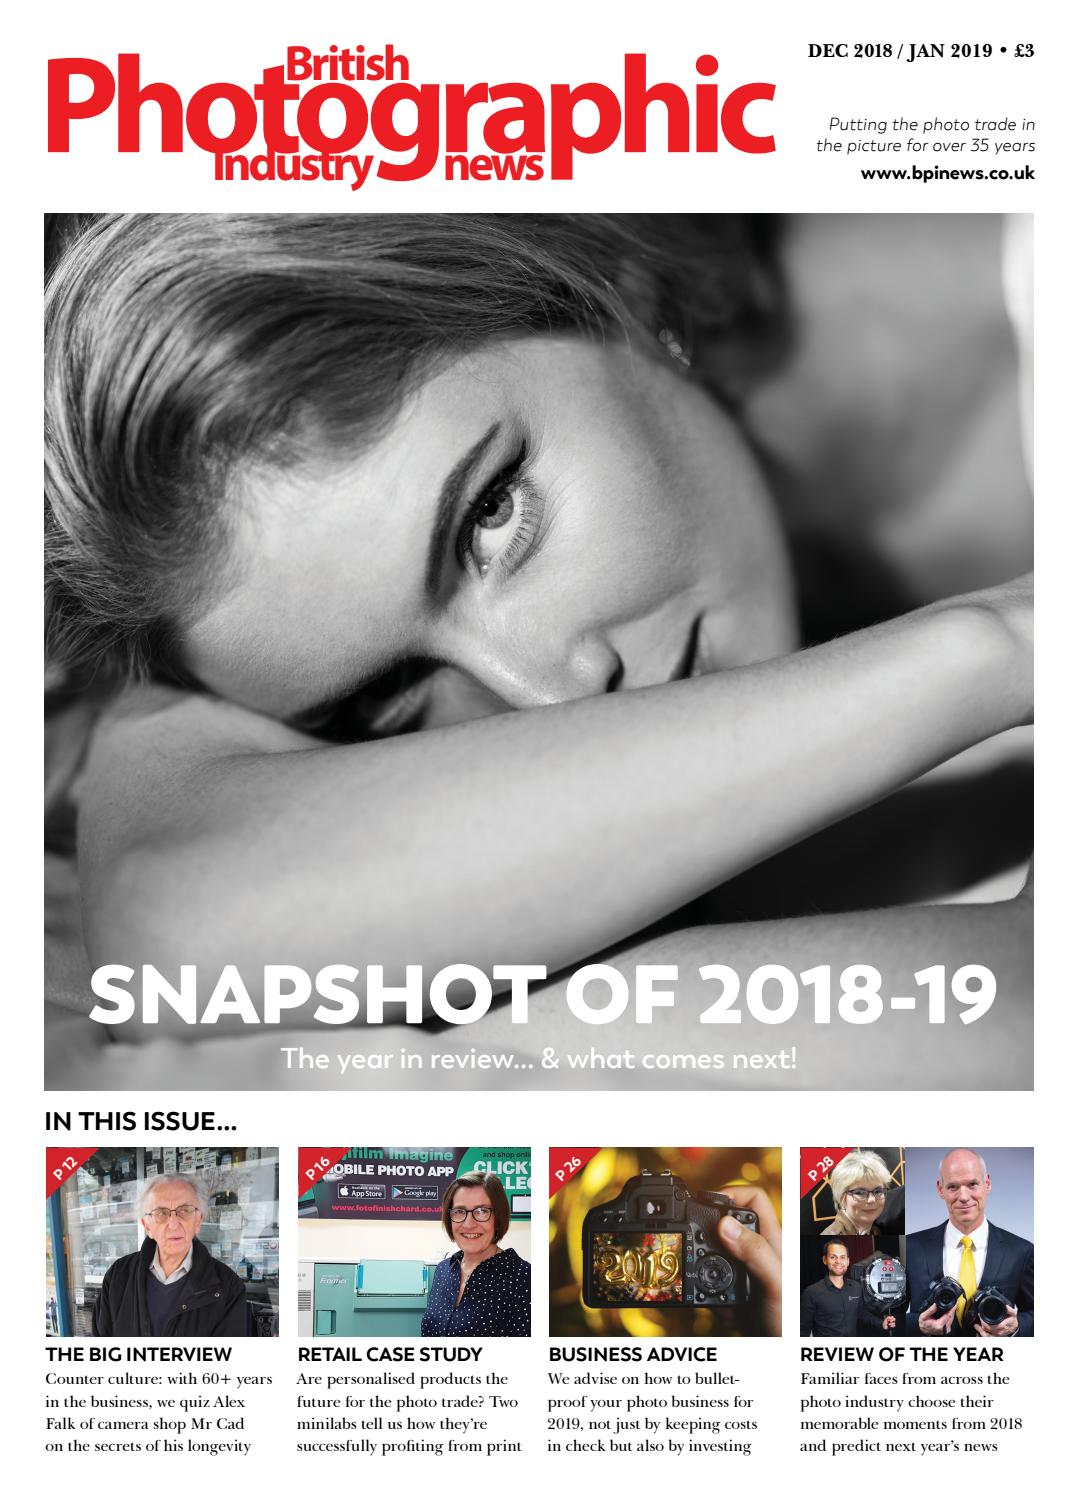 British Photographic Industry News December 2018 January 2019 by BPI